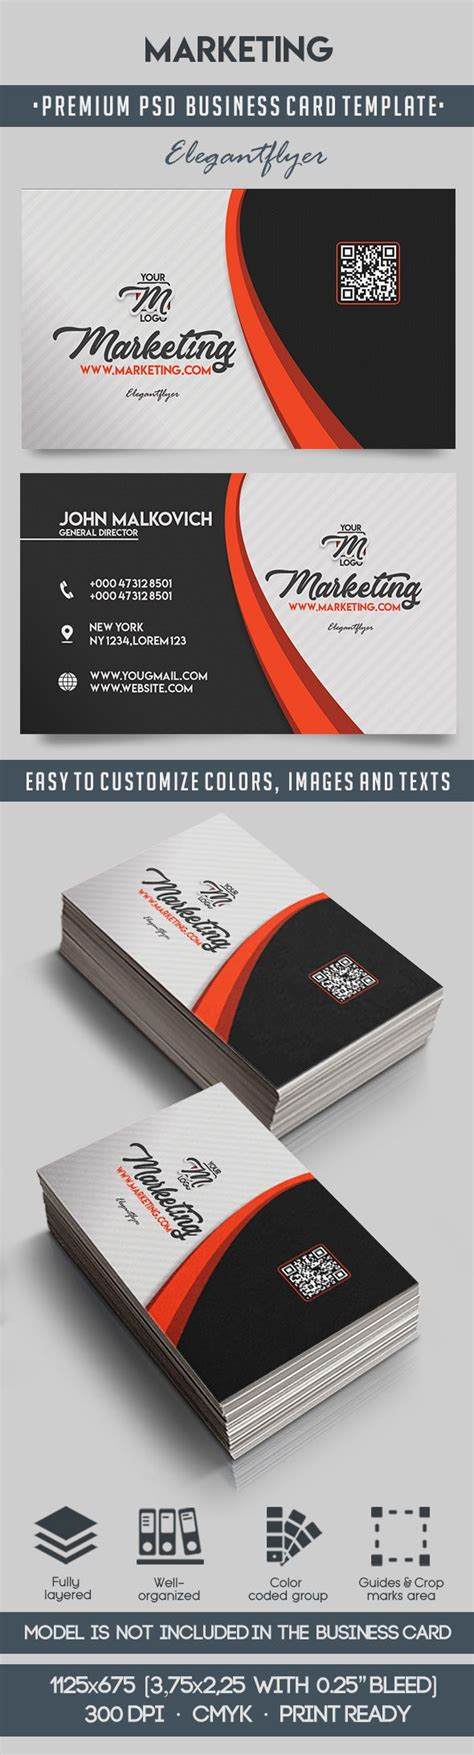 Advertising Business Cards Templates by Marketing Premium Business Card Templates Psd By